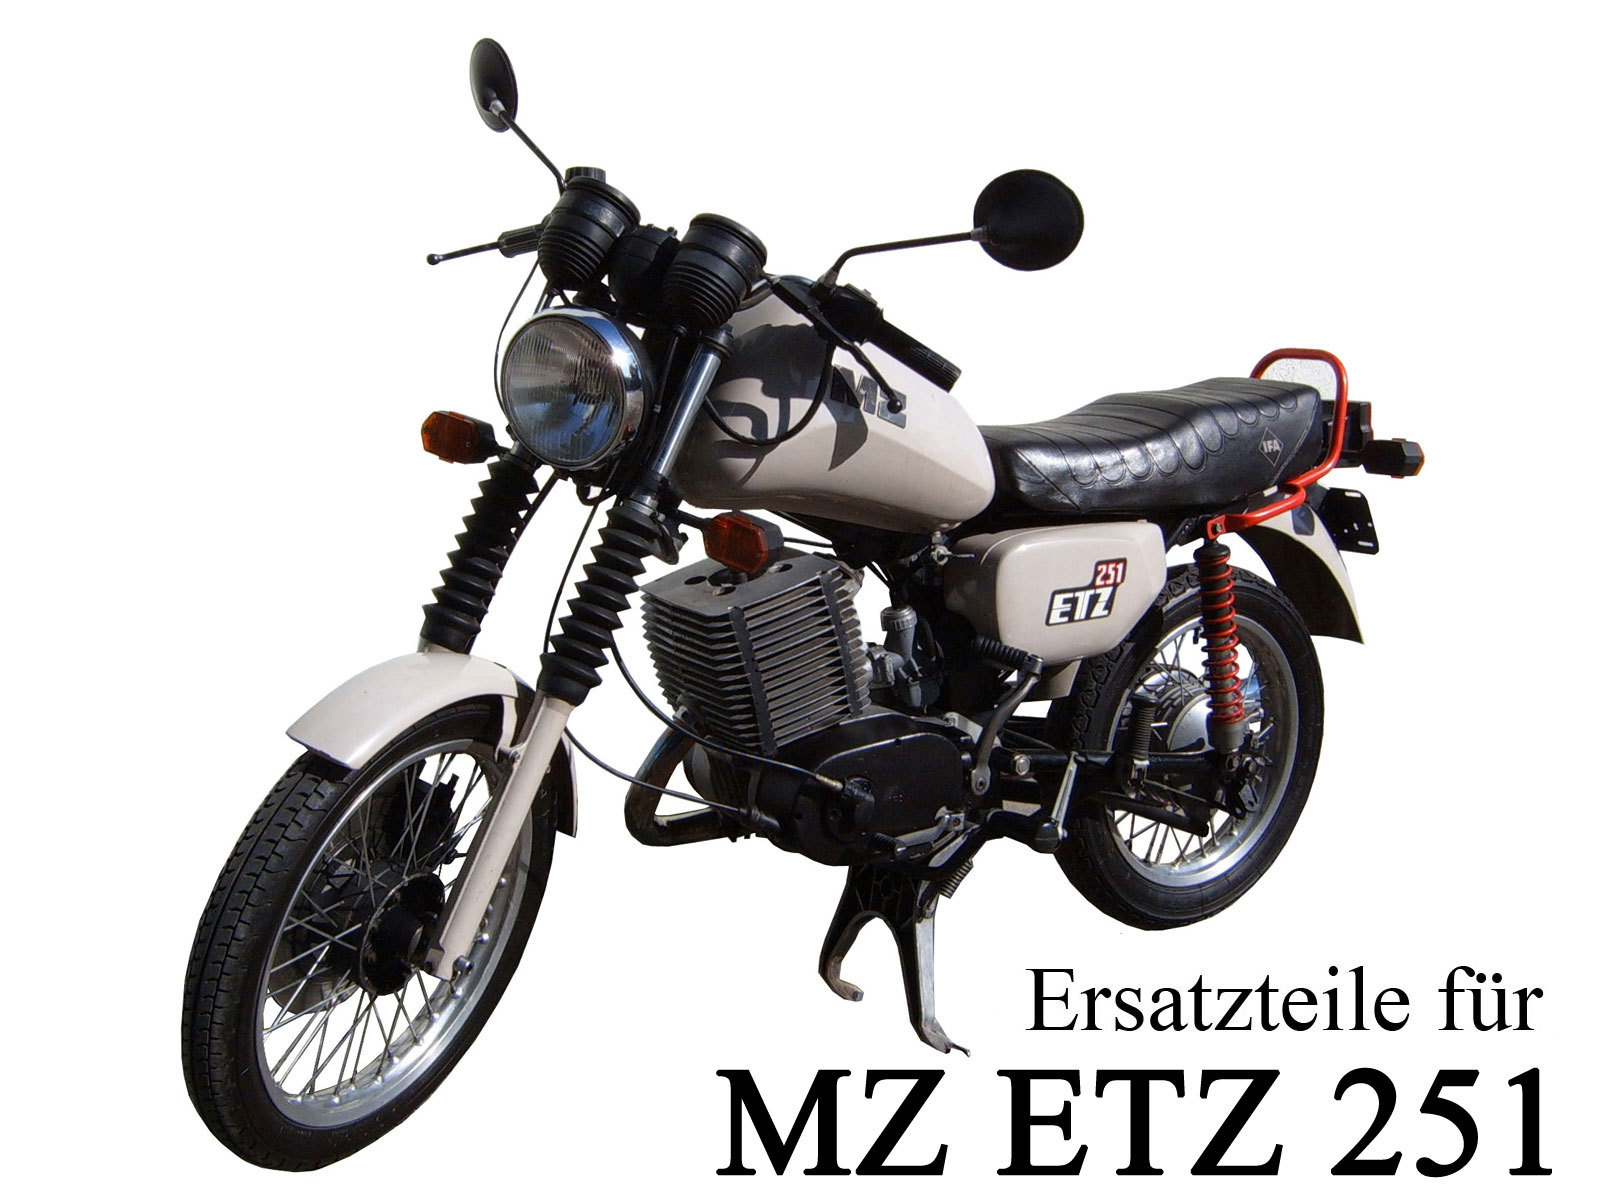 ddr motorrad ersatzteile mz etz ts es bk rt iwl emw awo simson. Black Bedroom Furniture Sets. Home Design Ideas